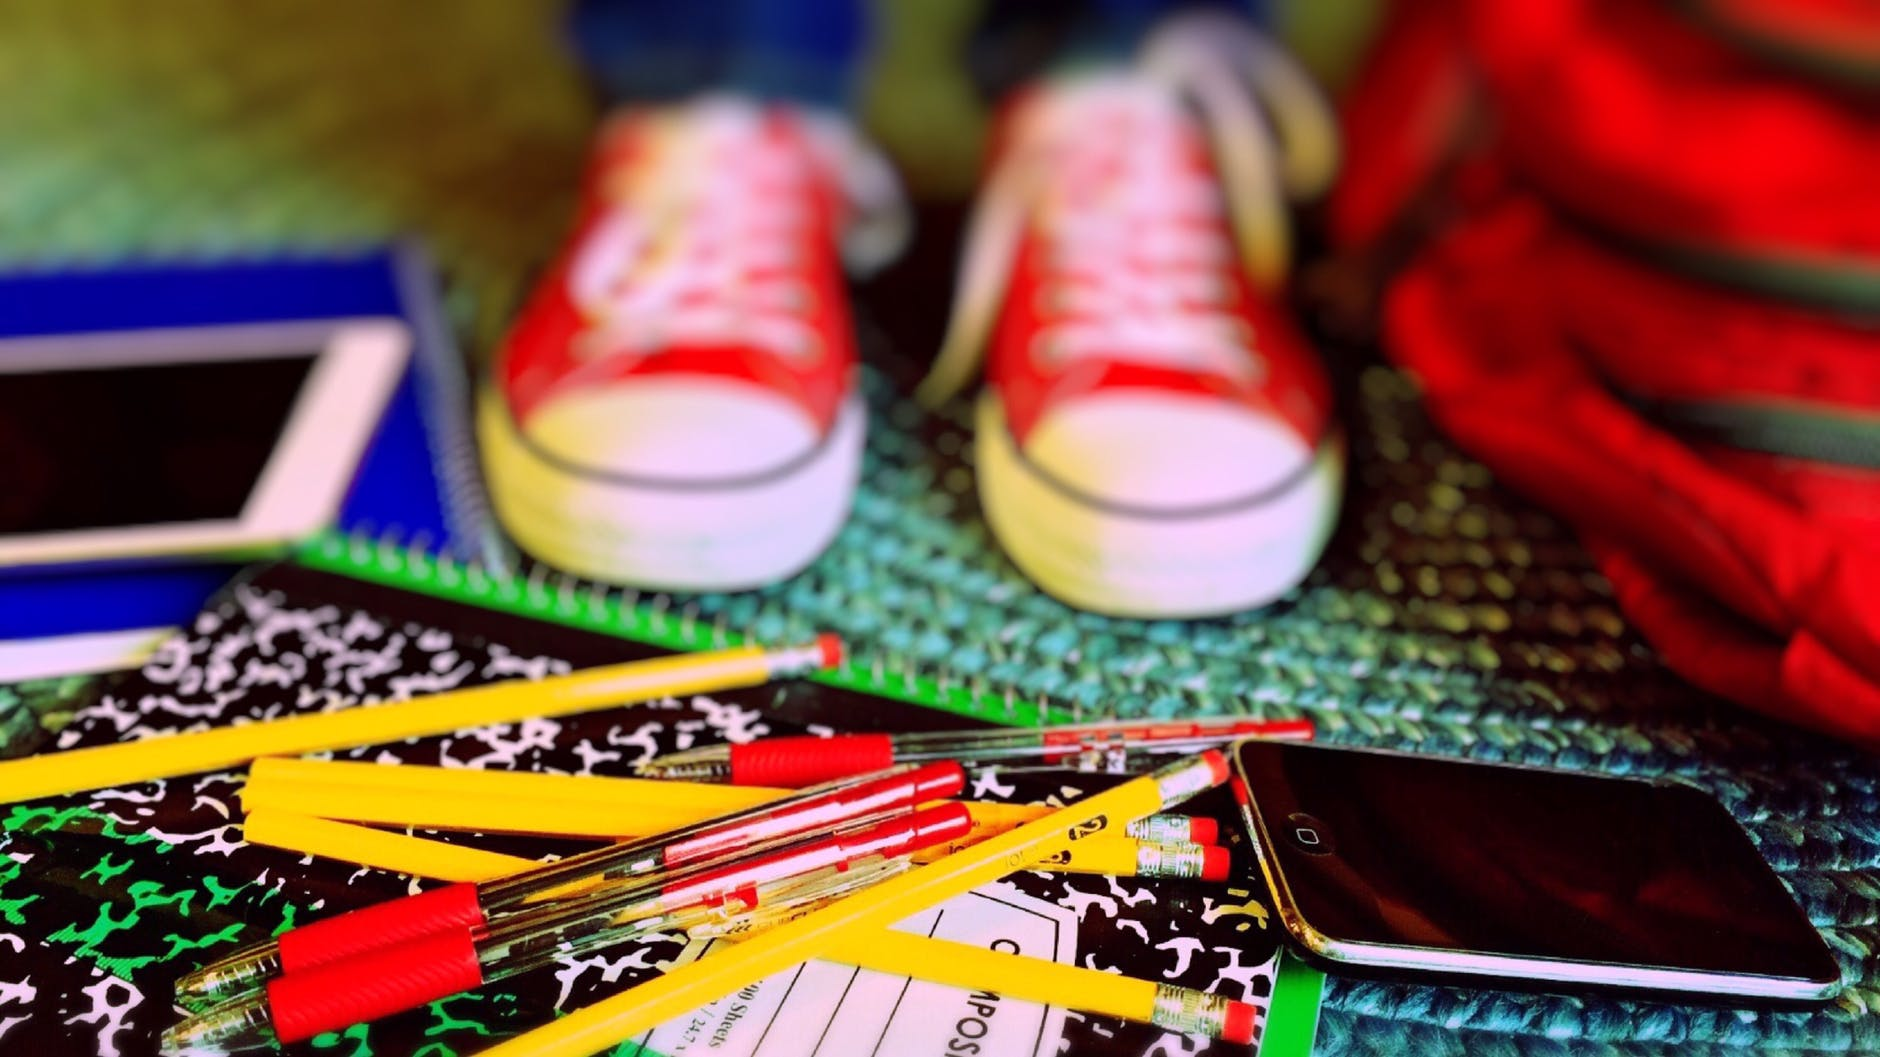 Kid's red sneakers, lots of pencils & pens scattered around the feet, mobile phone and tablet in the background.